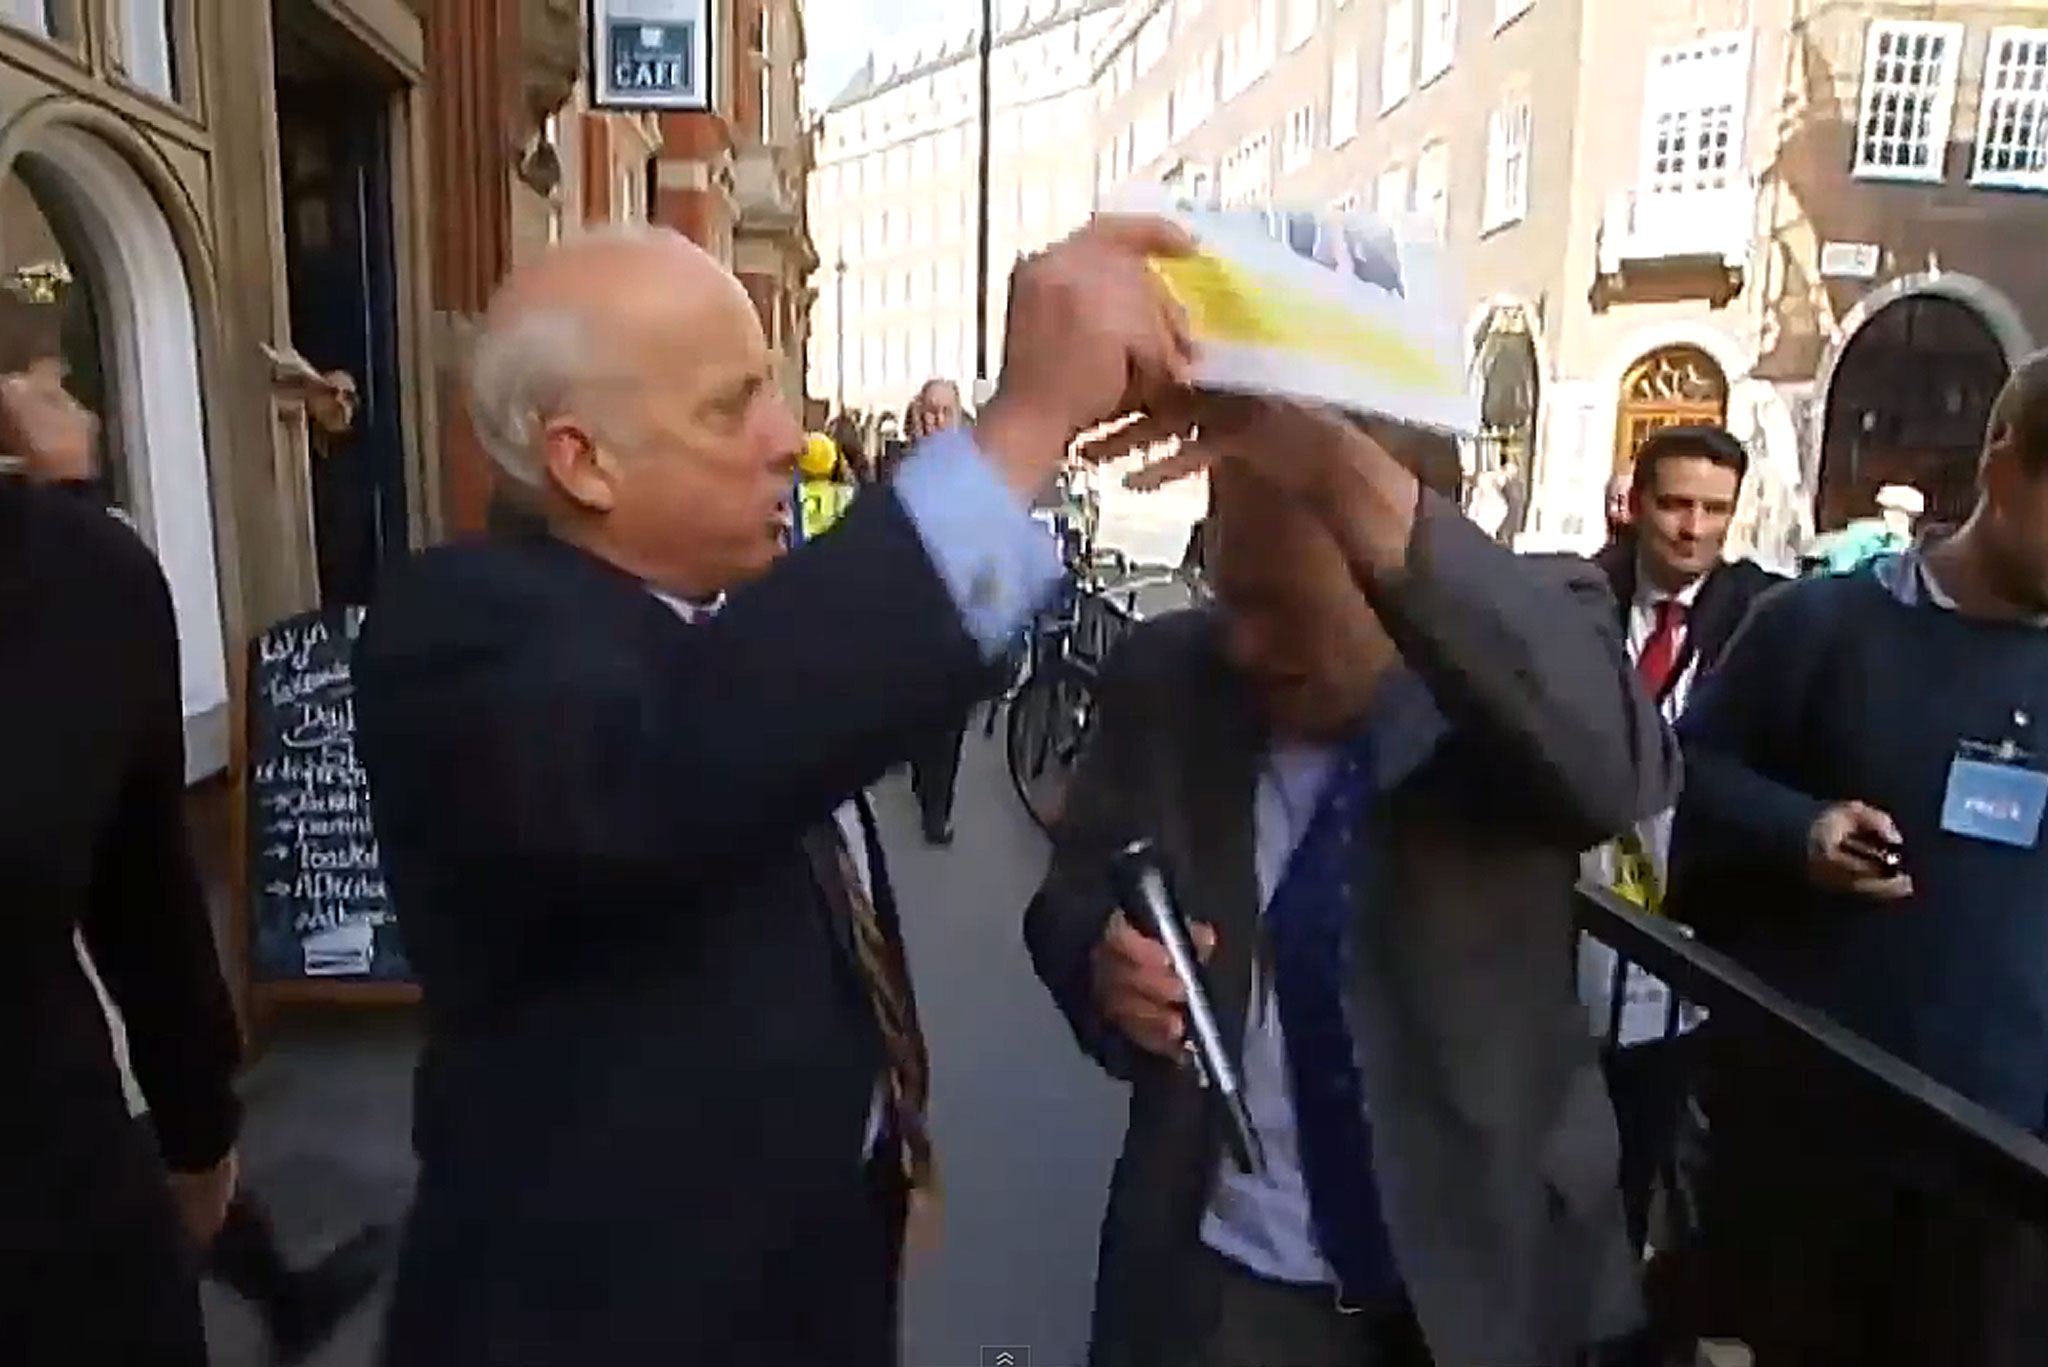 Godfrey Bloom hits Michael Crick over the head with a UKIP brochure.